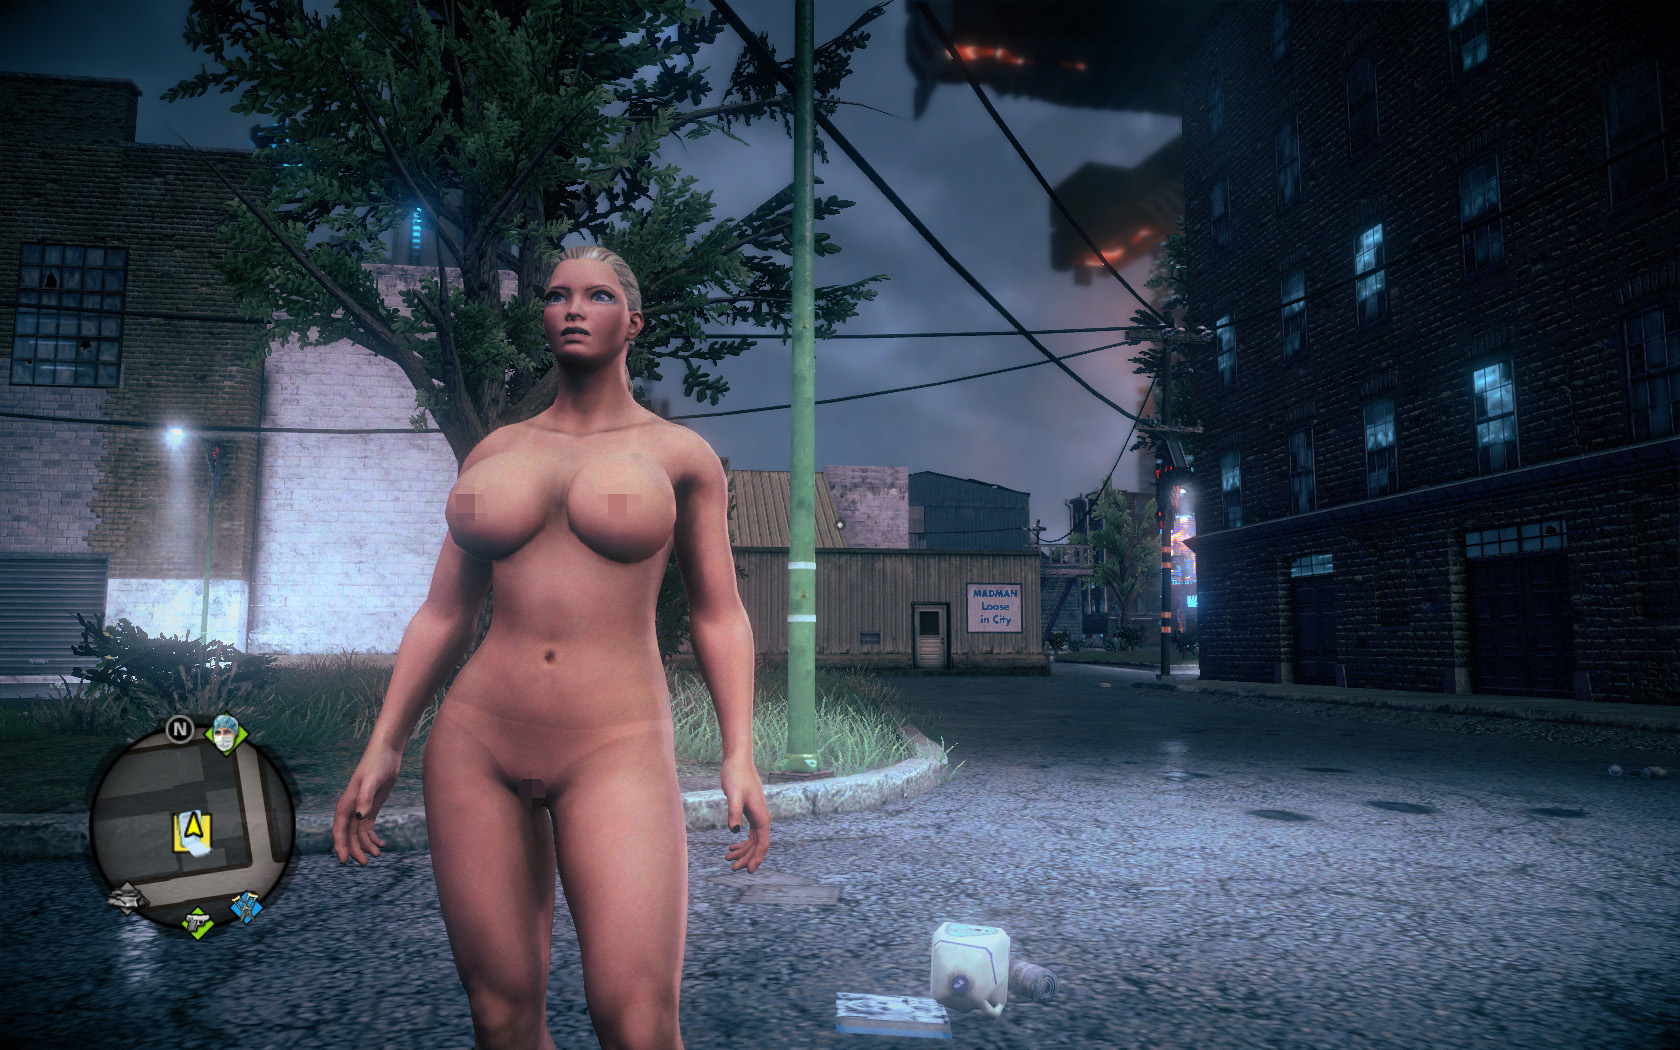 Saints row 3 porn patch sexual thumbs